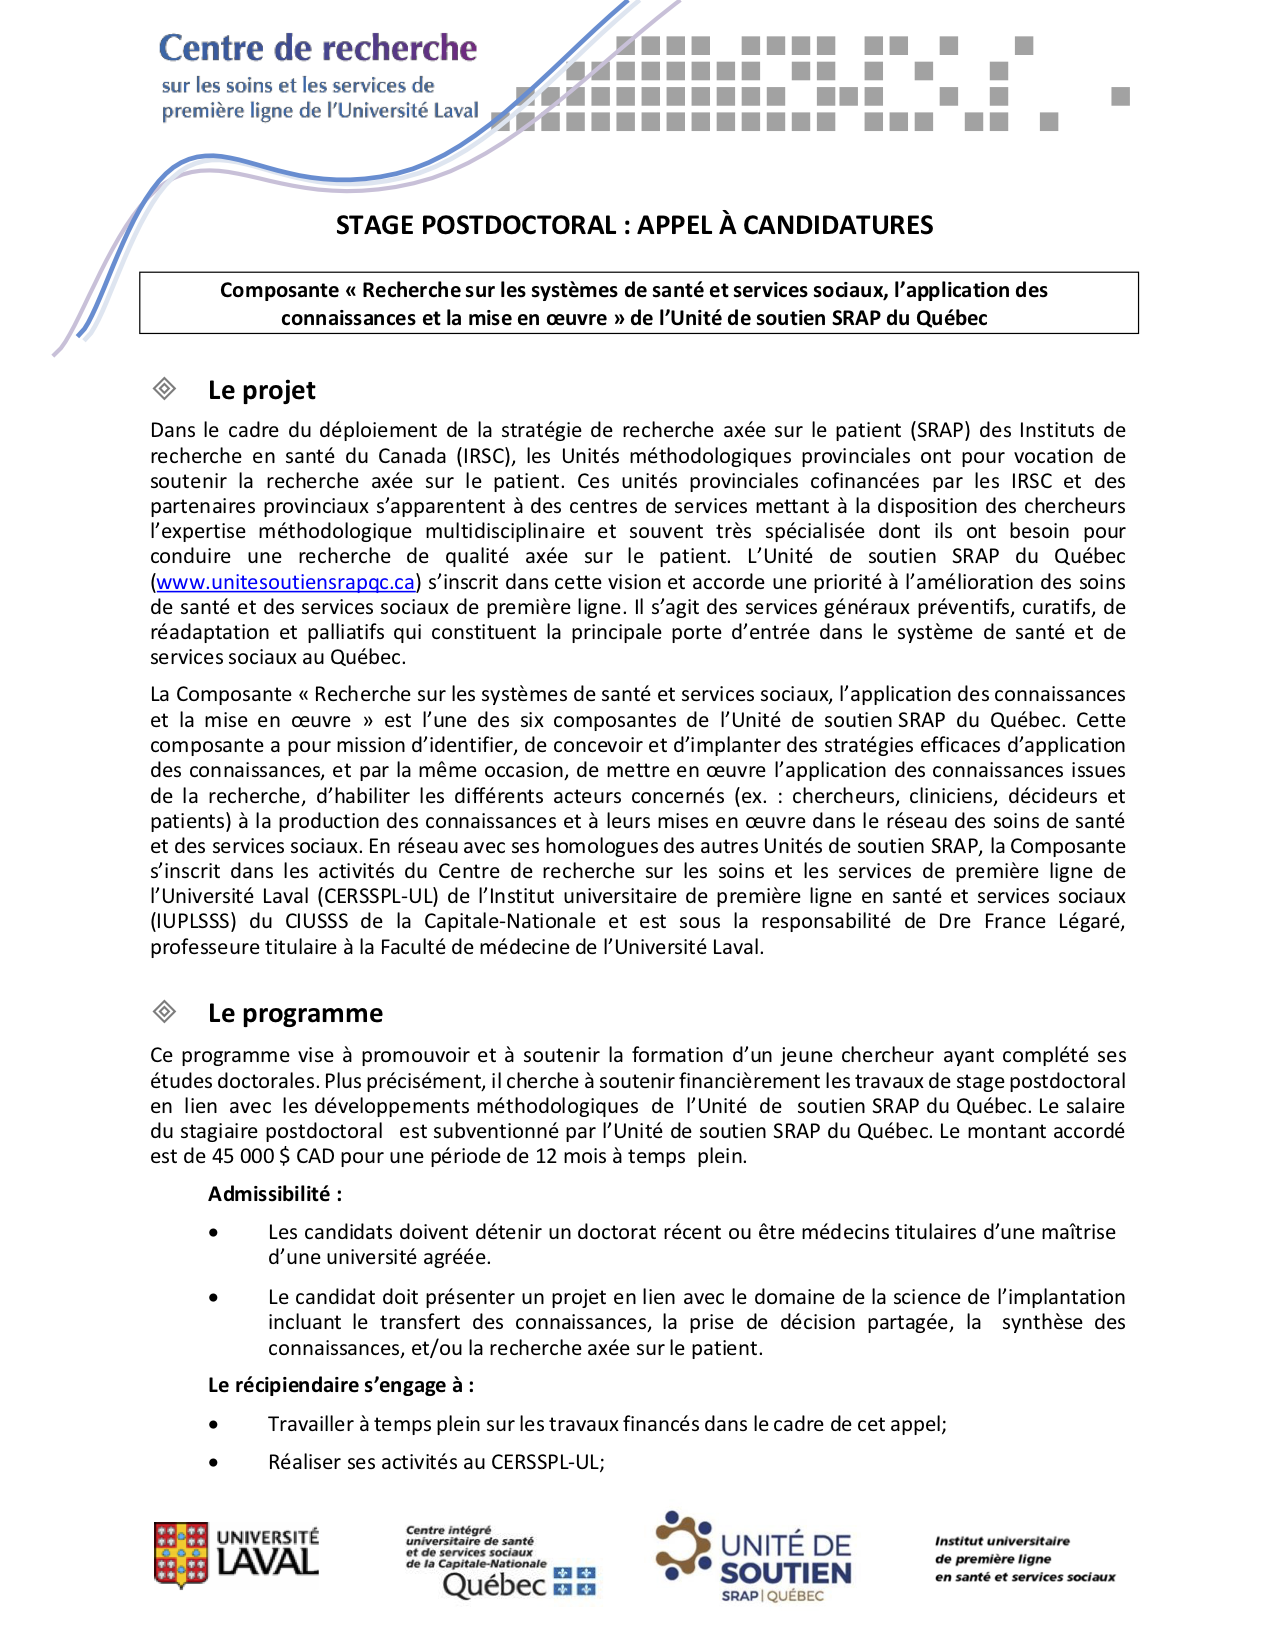 Offre de stage postdoctoral